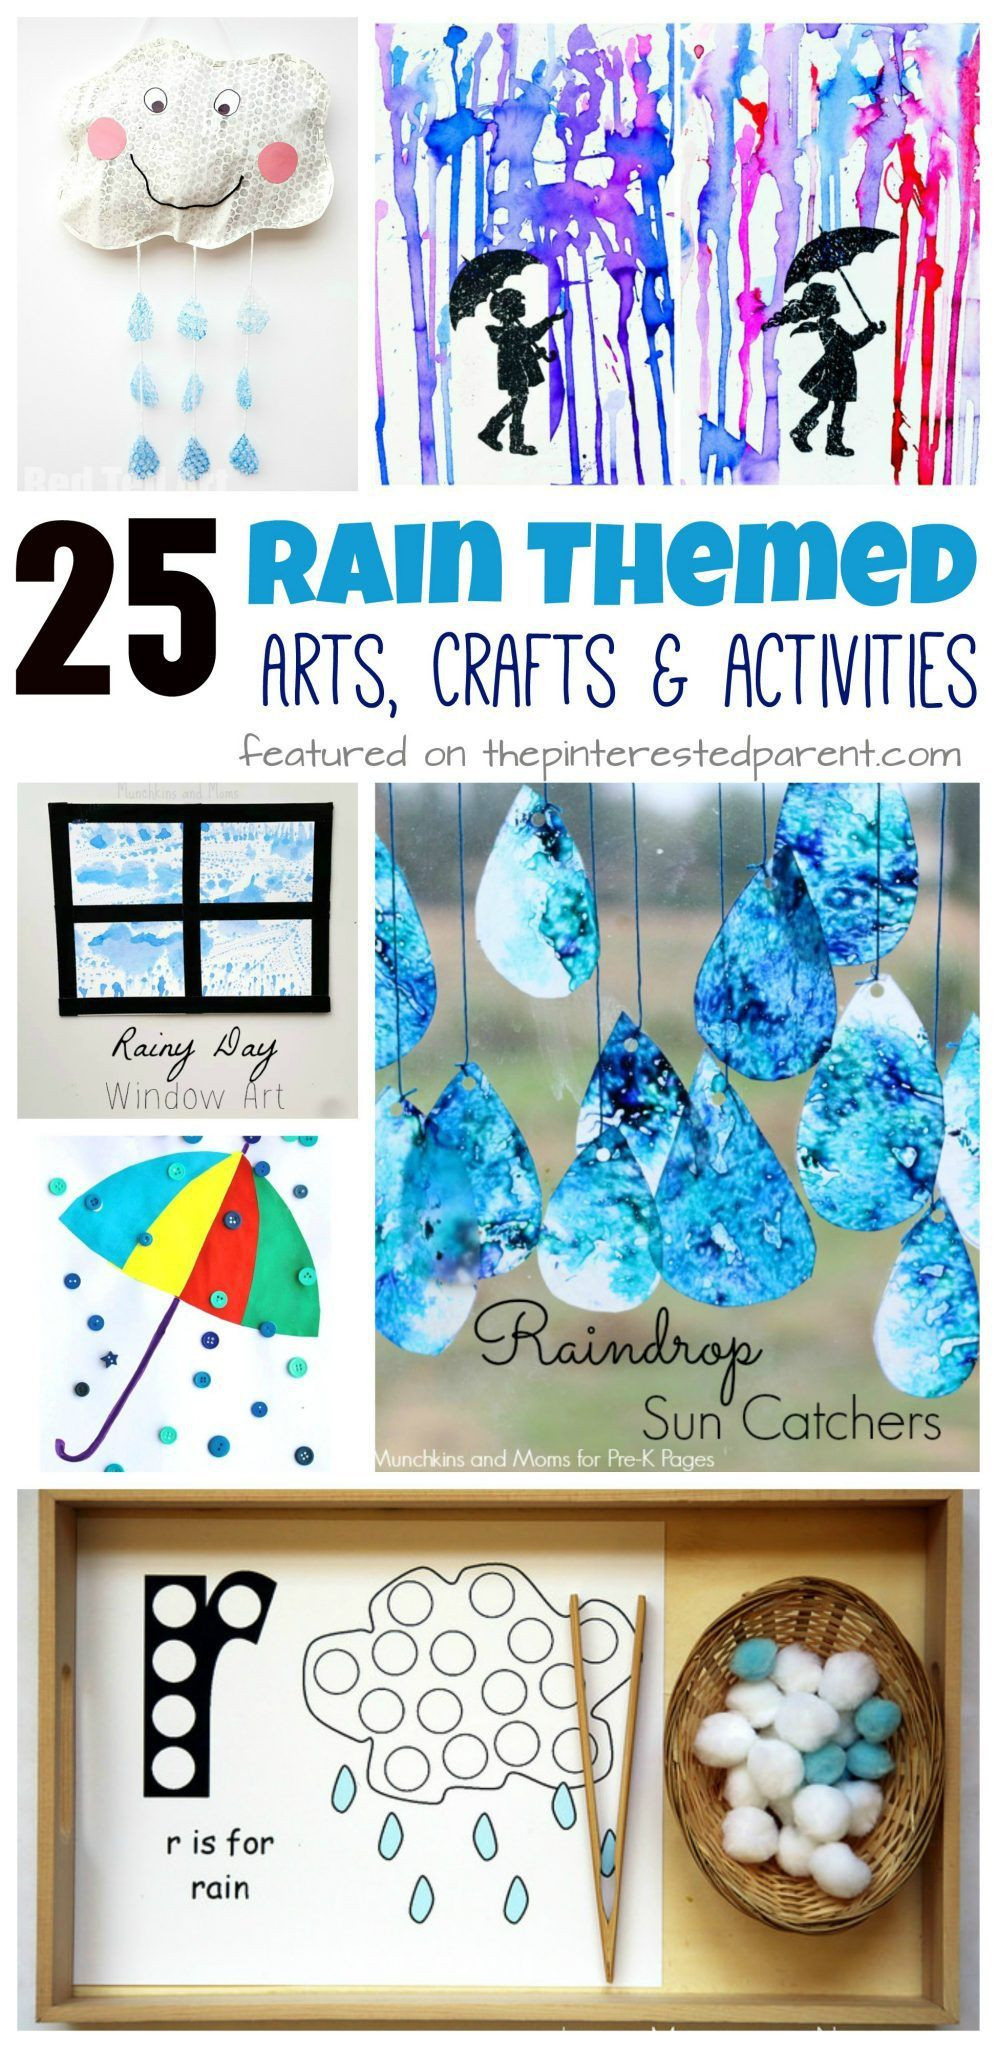 Preschool Arts And Crafts Ideas  25 Rain themed arts crafts and activities for the spring